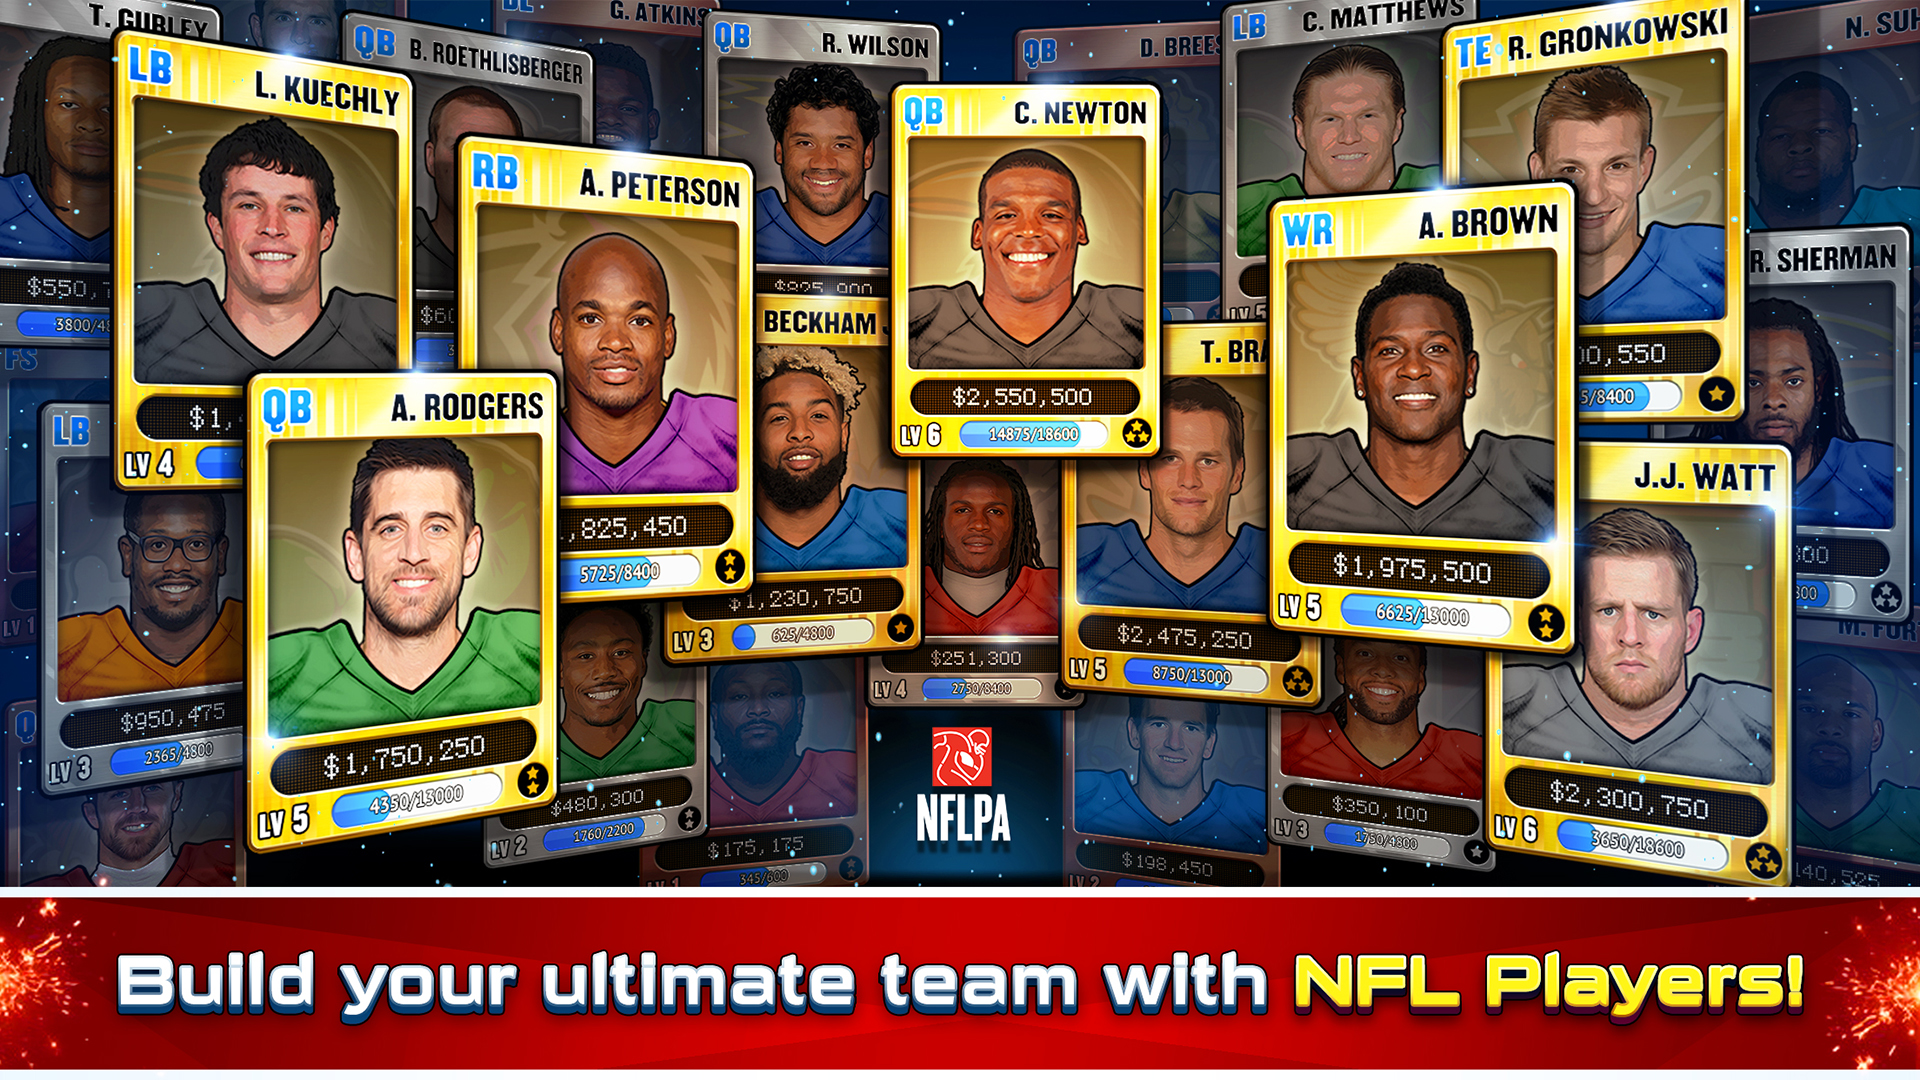 Football Heroes Pro Online - NFL Players Unleashed screenshot 12